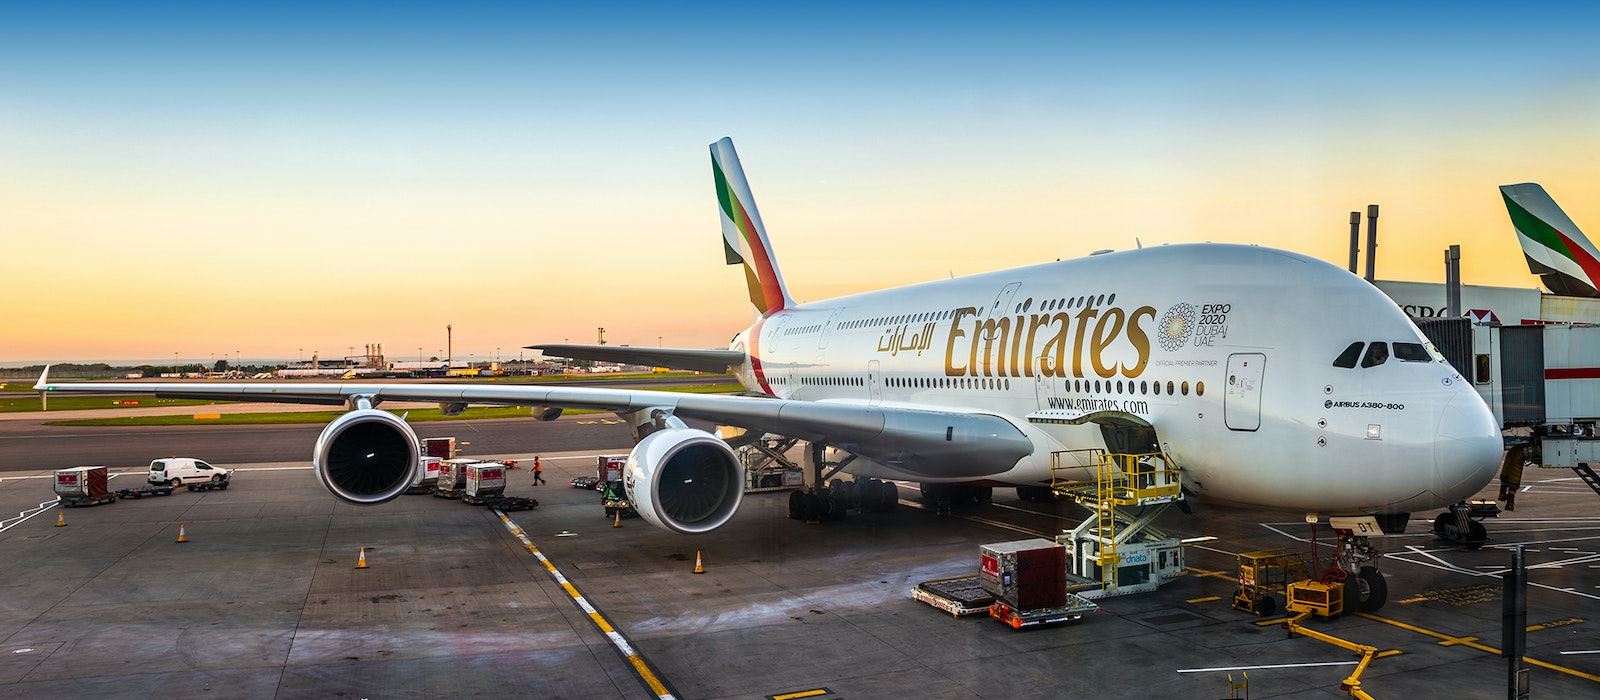 Emirates is offering two-for-one fares in economy, business, and first class right now.